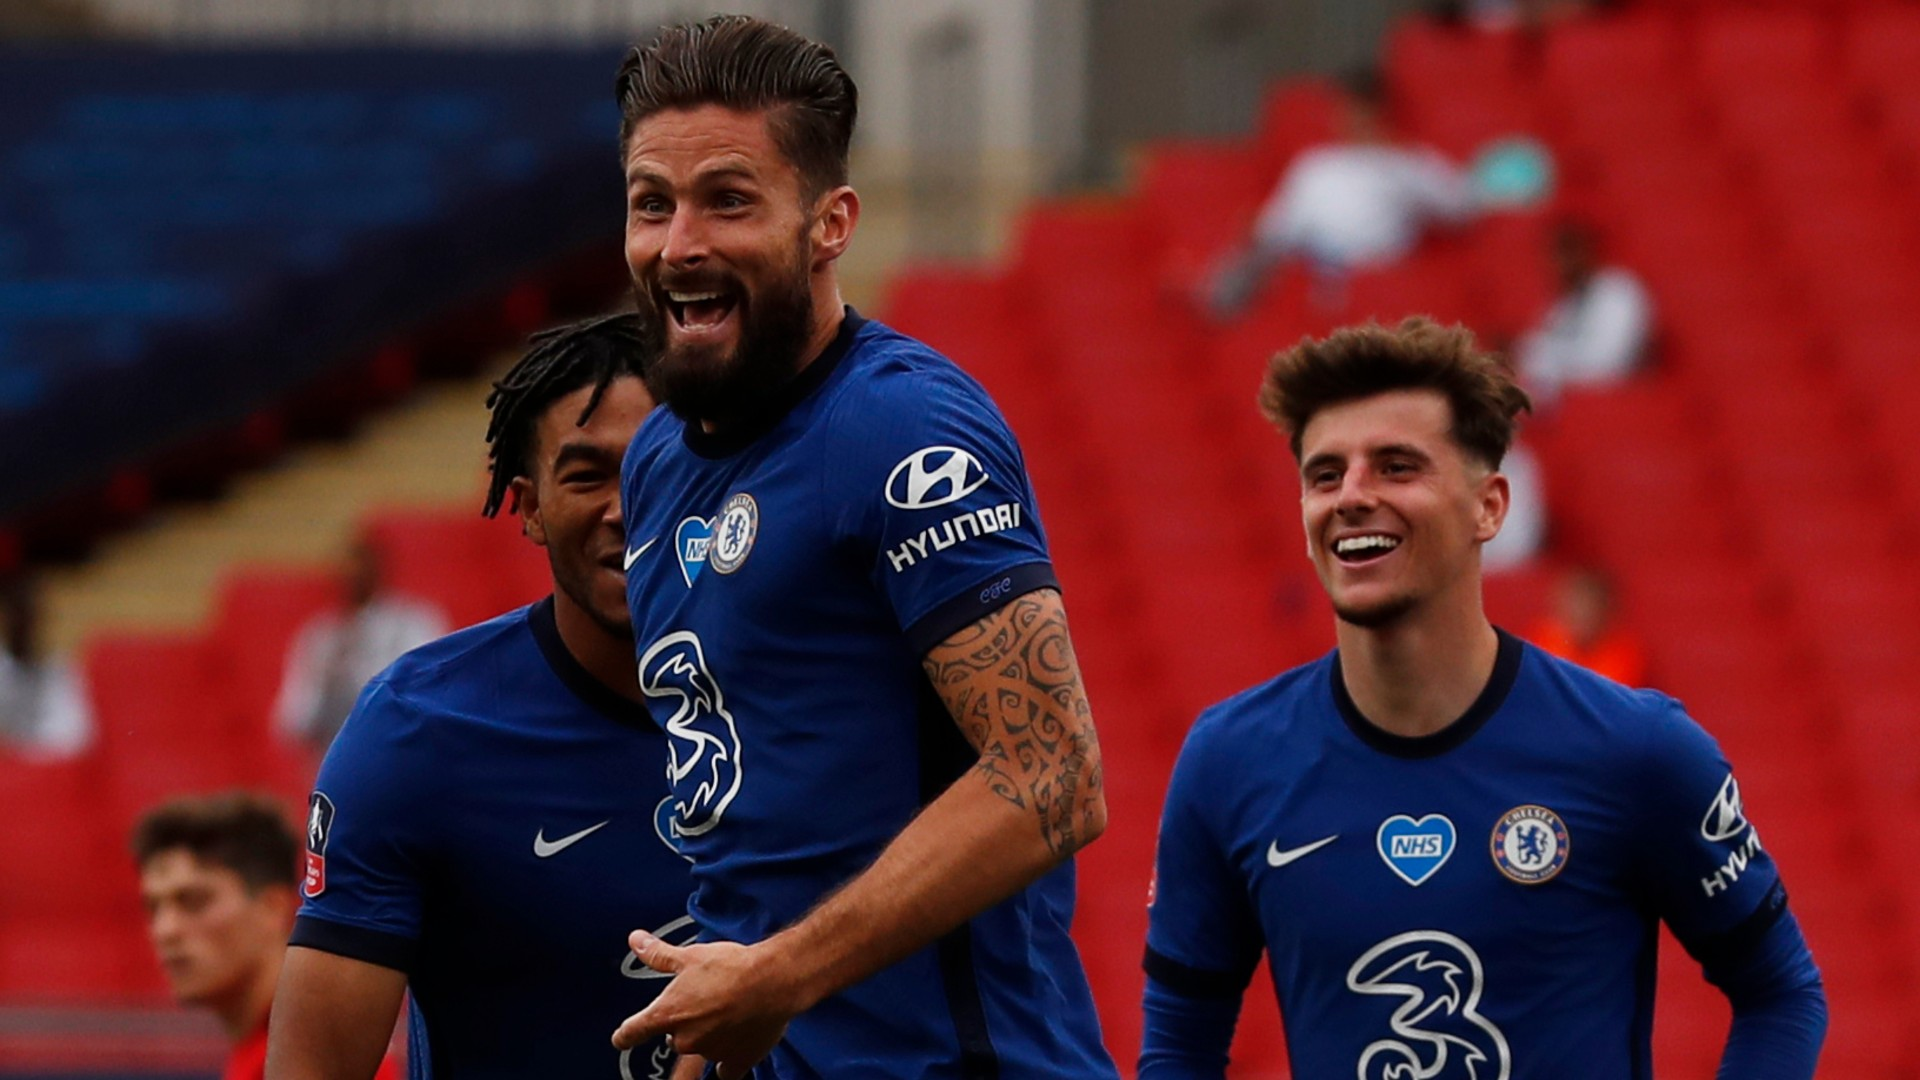 'Werner isn't the same as me' - Giroud relishing Chelsea competition as he targets the top